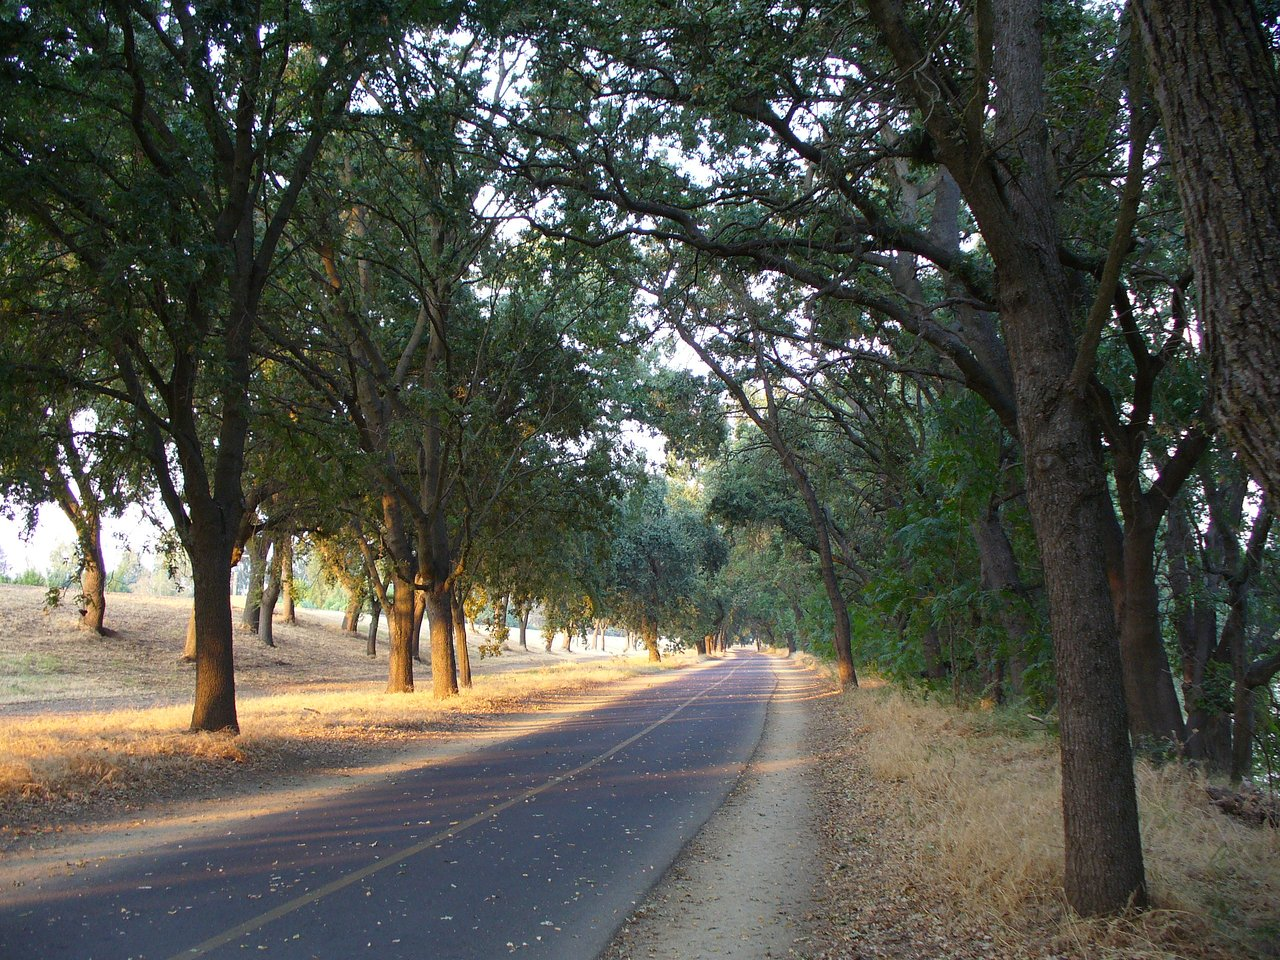 Jedediah Smith Trail Is A 32-Mile Path In Northern California That Winds Alongside Lakes, Rivers, And Parks